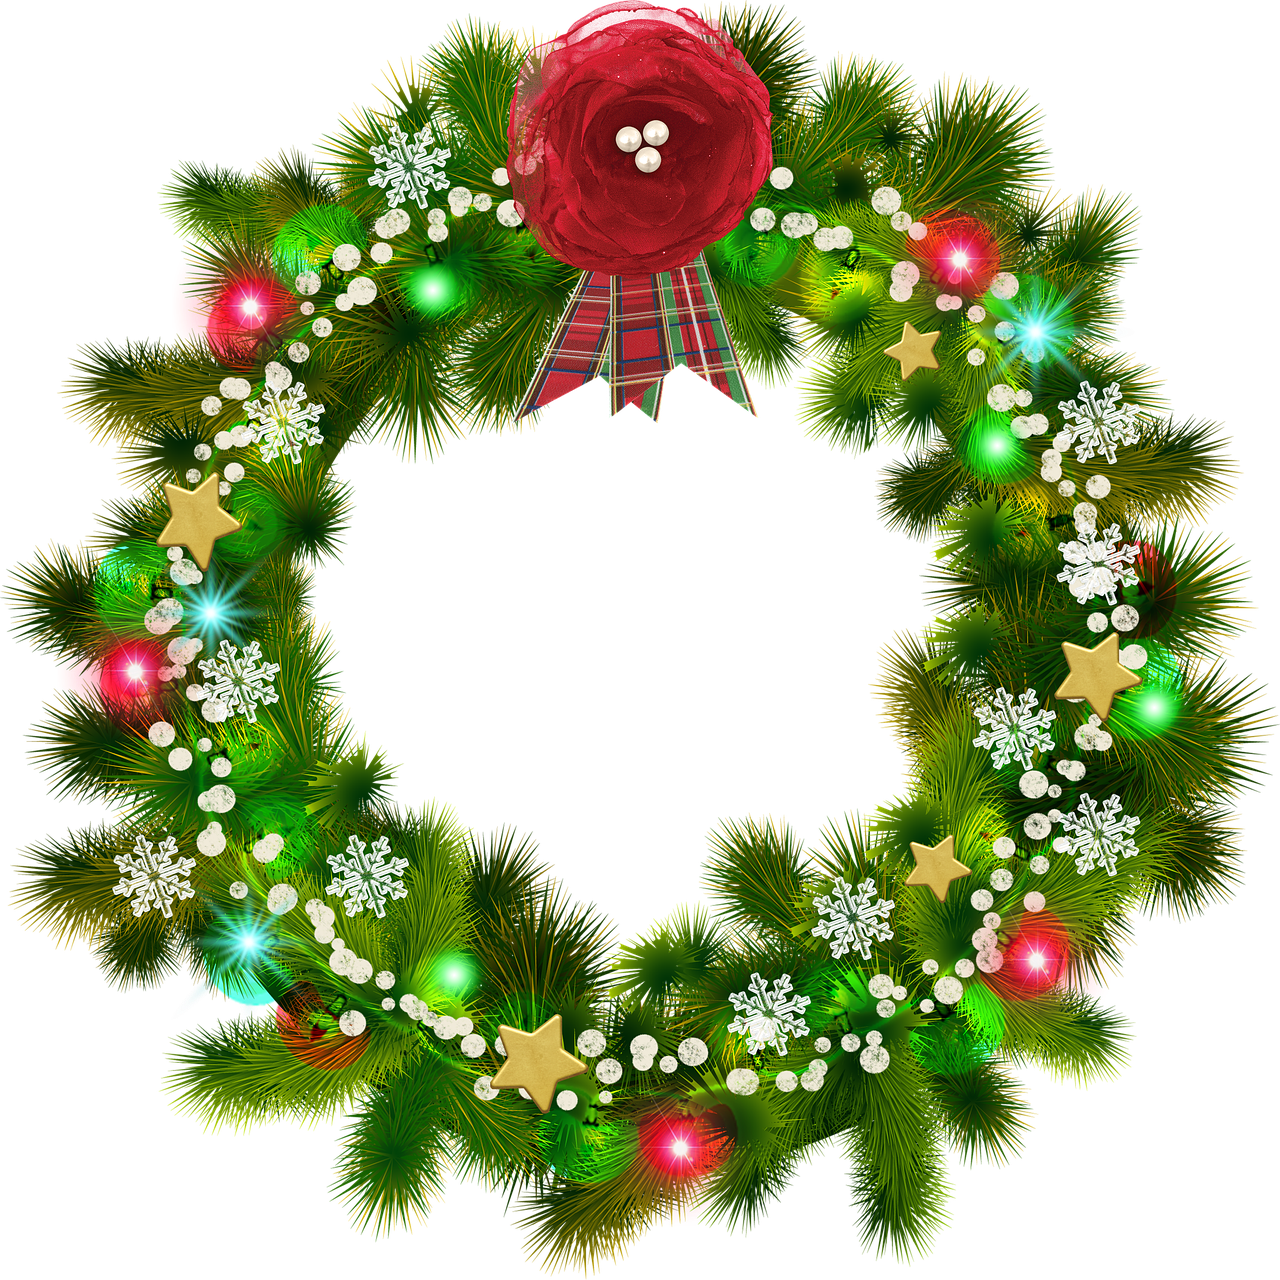 Christmas Wreath, Red Flower, Christmas Snow - Christmas Wreath (720x720), Png Download